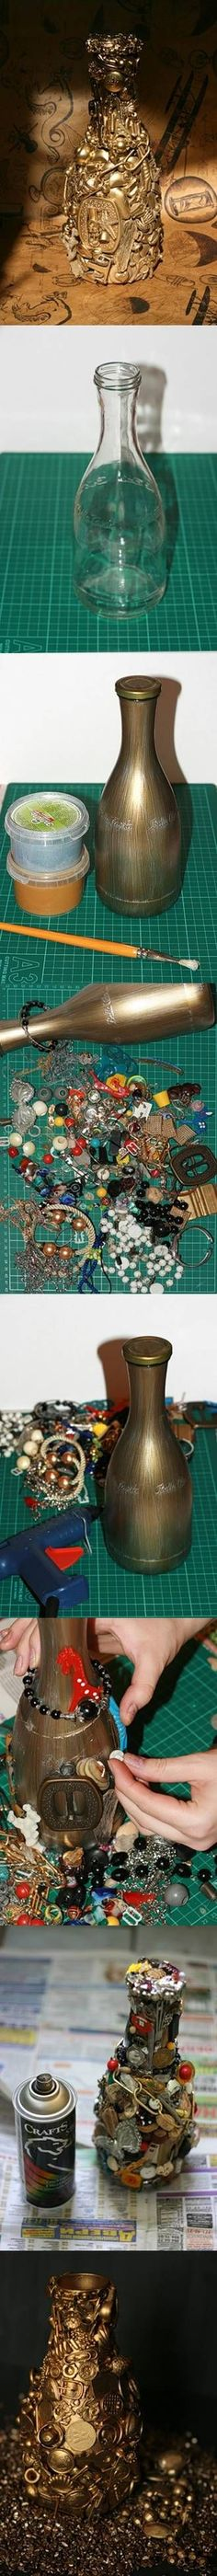 DIY Unwanted Things Decorated Bottle DIY Projects /...